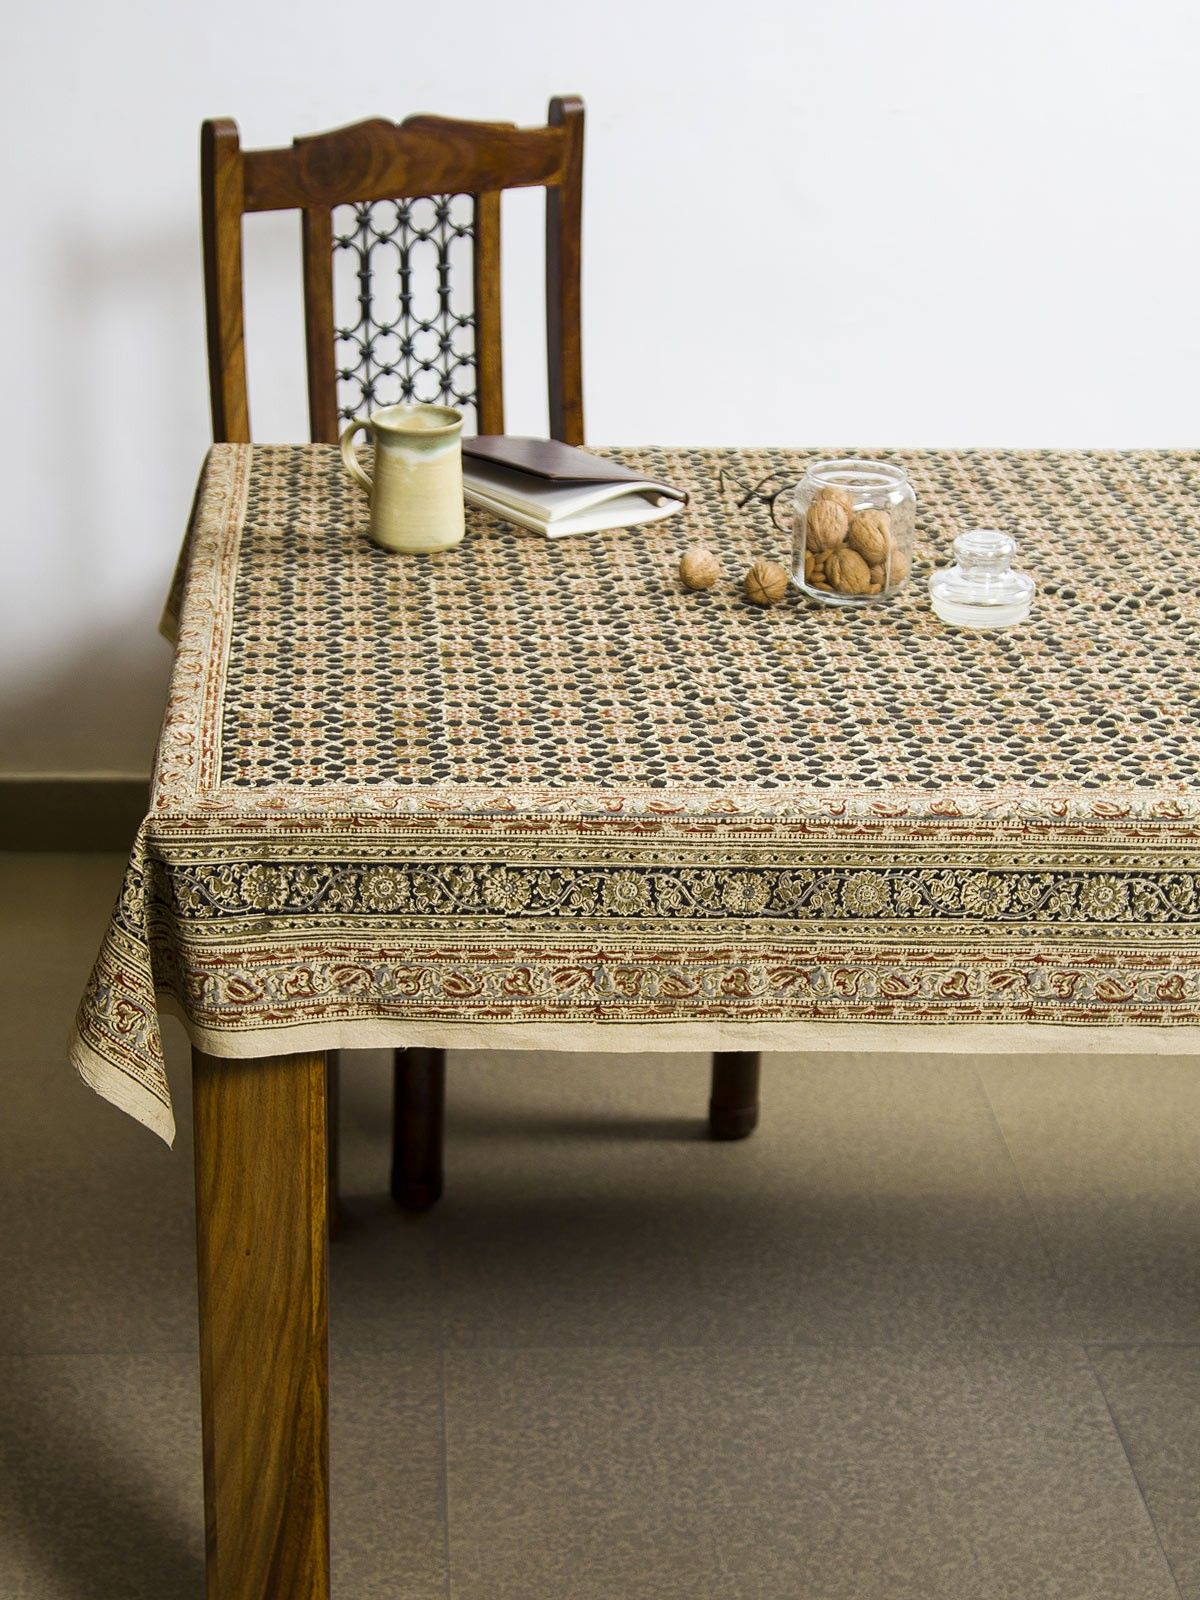 Charcoal Vayati Kalamkari 4 seater table cover